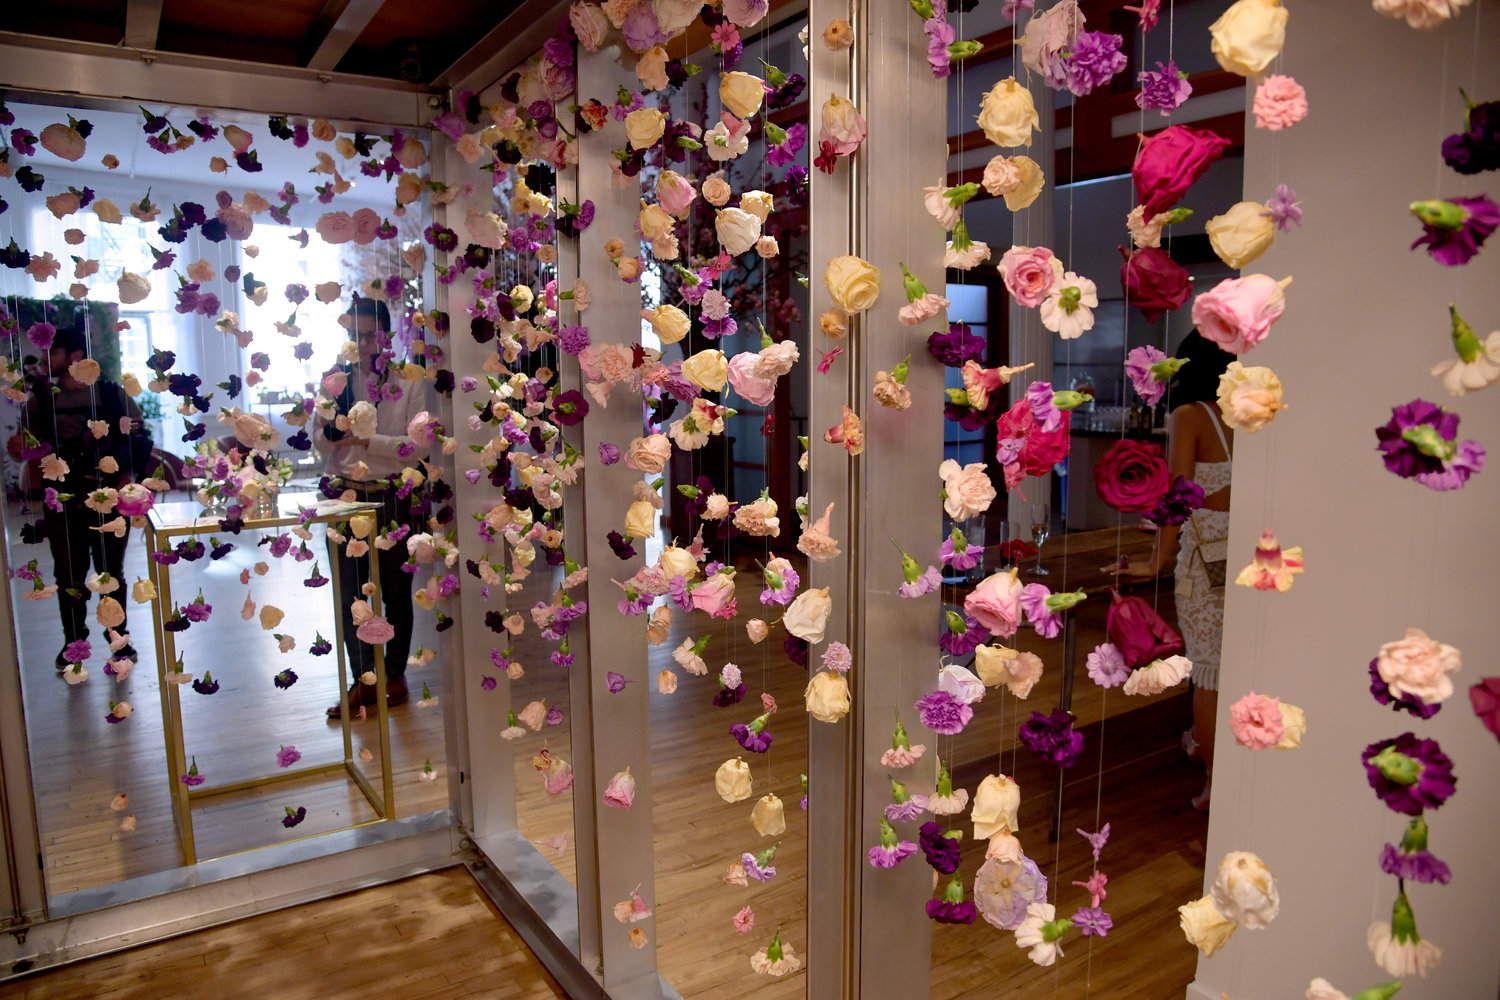 Use Hanging Installations To Your Advantage